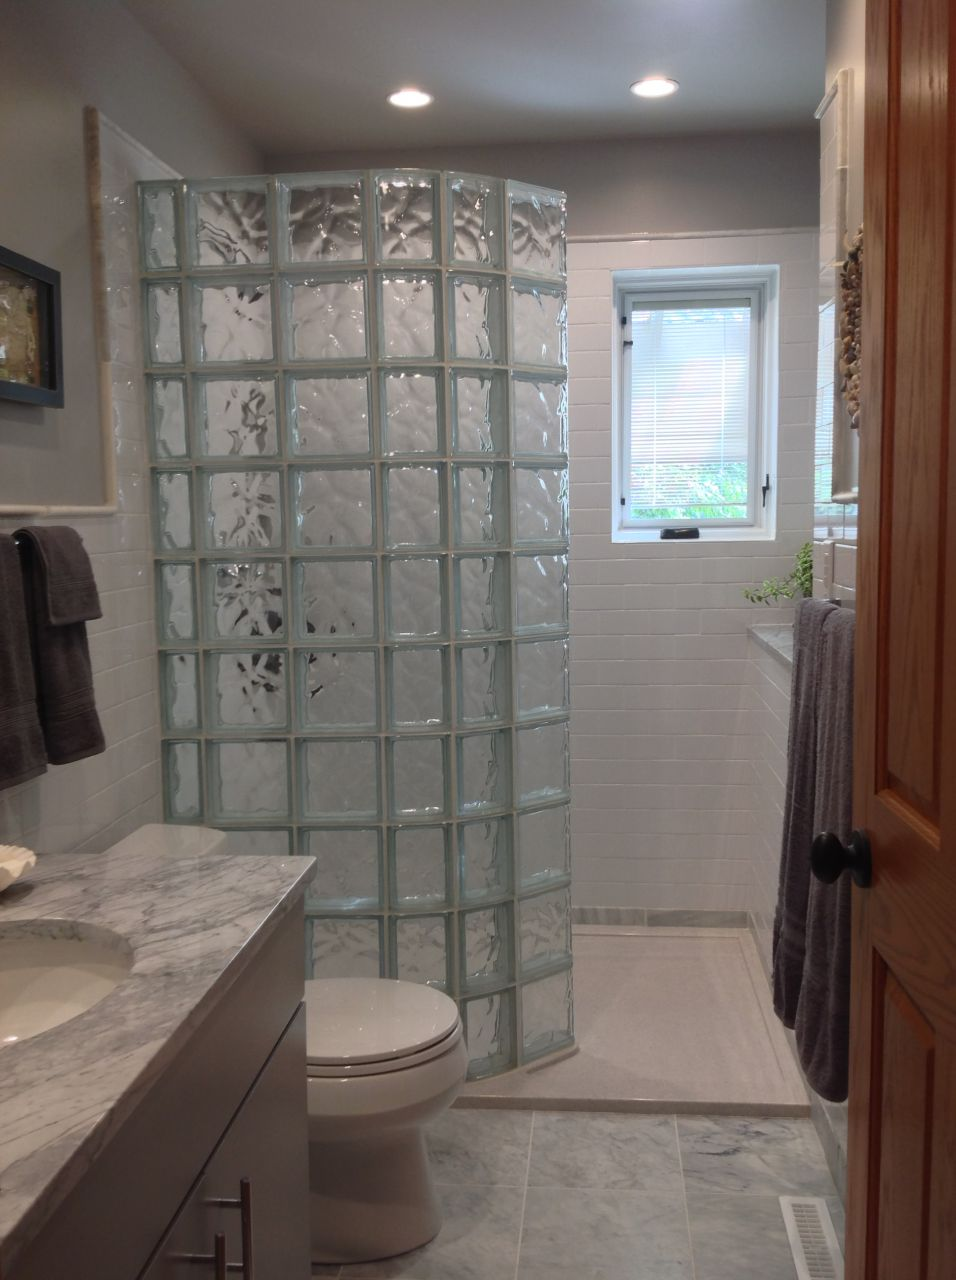 Bathroom Remodeling Innovate Building Solutions Blog Bathroom - Bathroom remodeling cleveland ohio